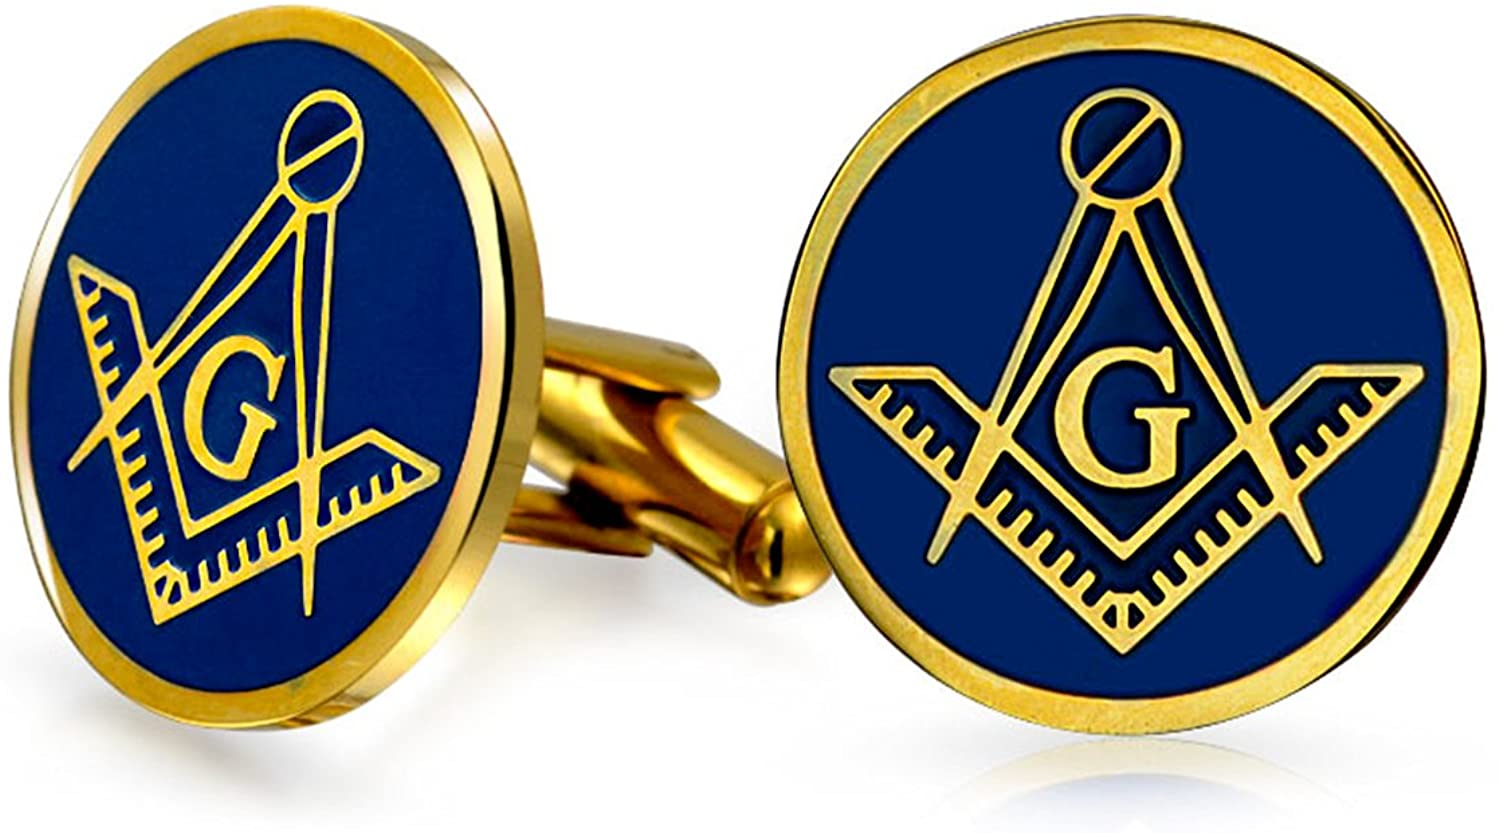 Bling Jewelry Freemasons Masonic Compass Symbol Round Cufflinks for Men Two Tone Gold Plated Silver Tone Stainless Steel